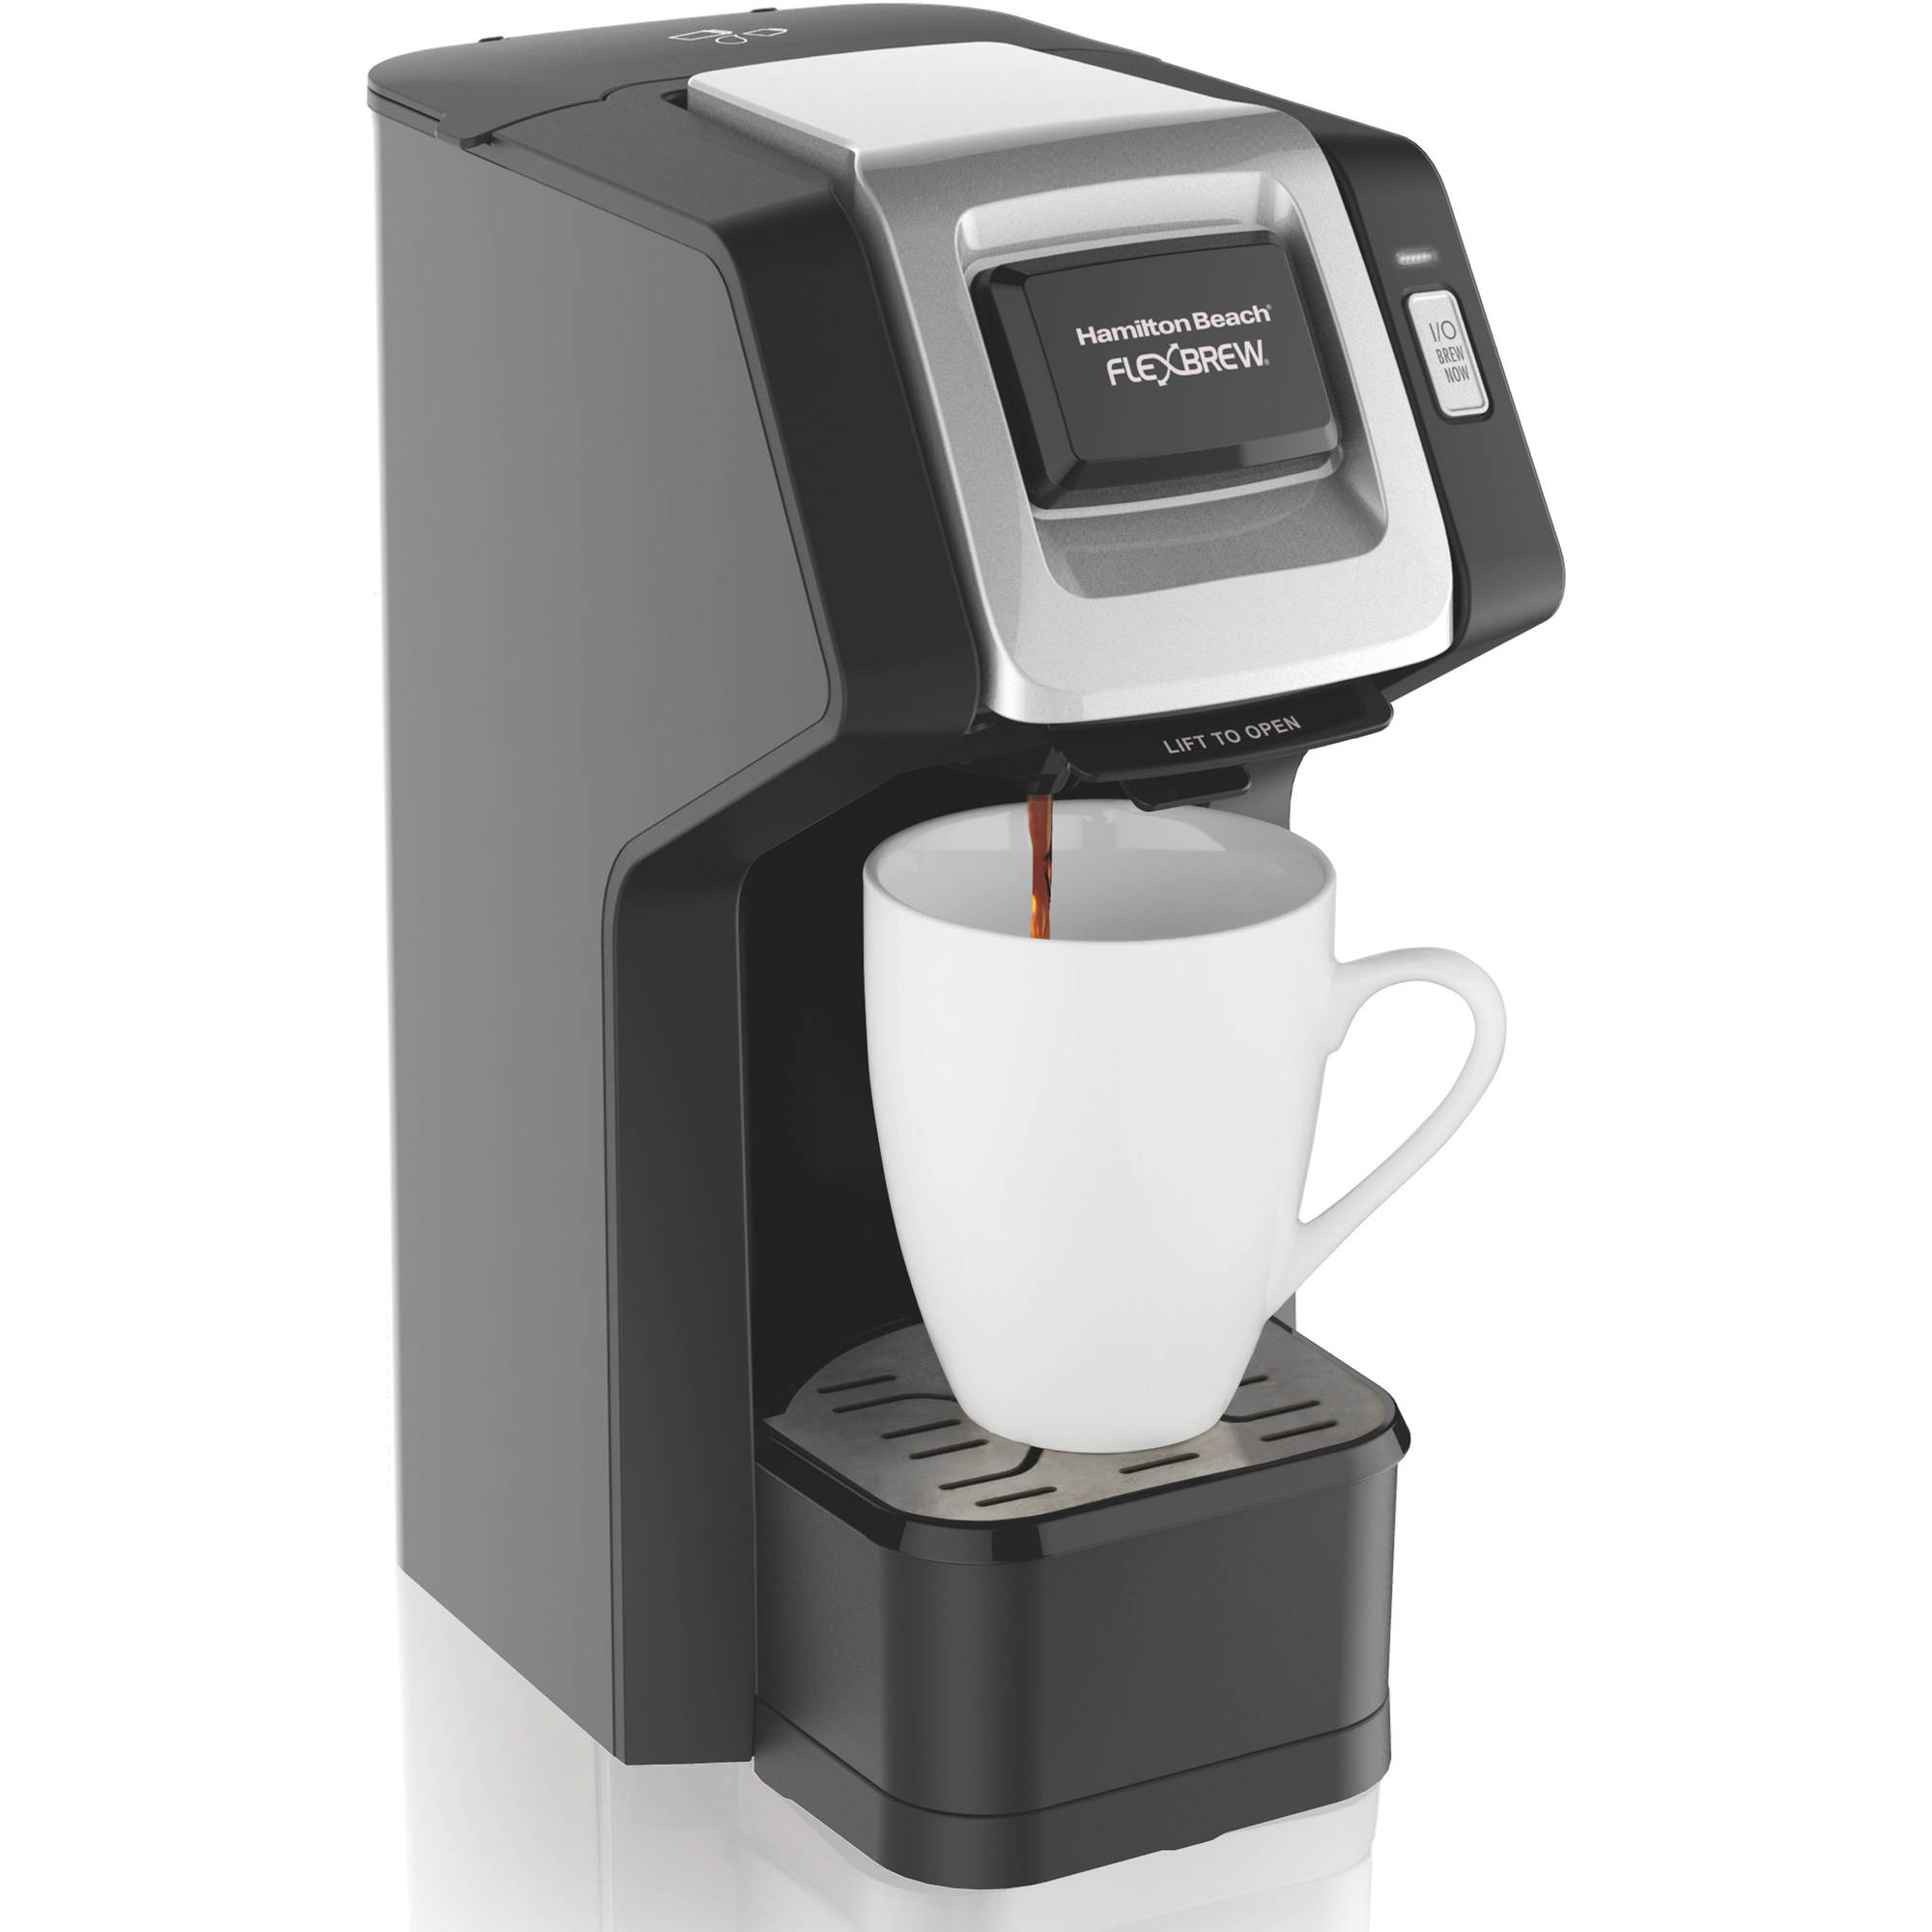 Hamilton Beach FlexBrew Single-Serve Coffee Maker | Model# 49974